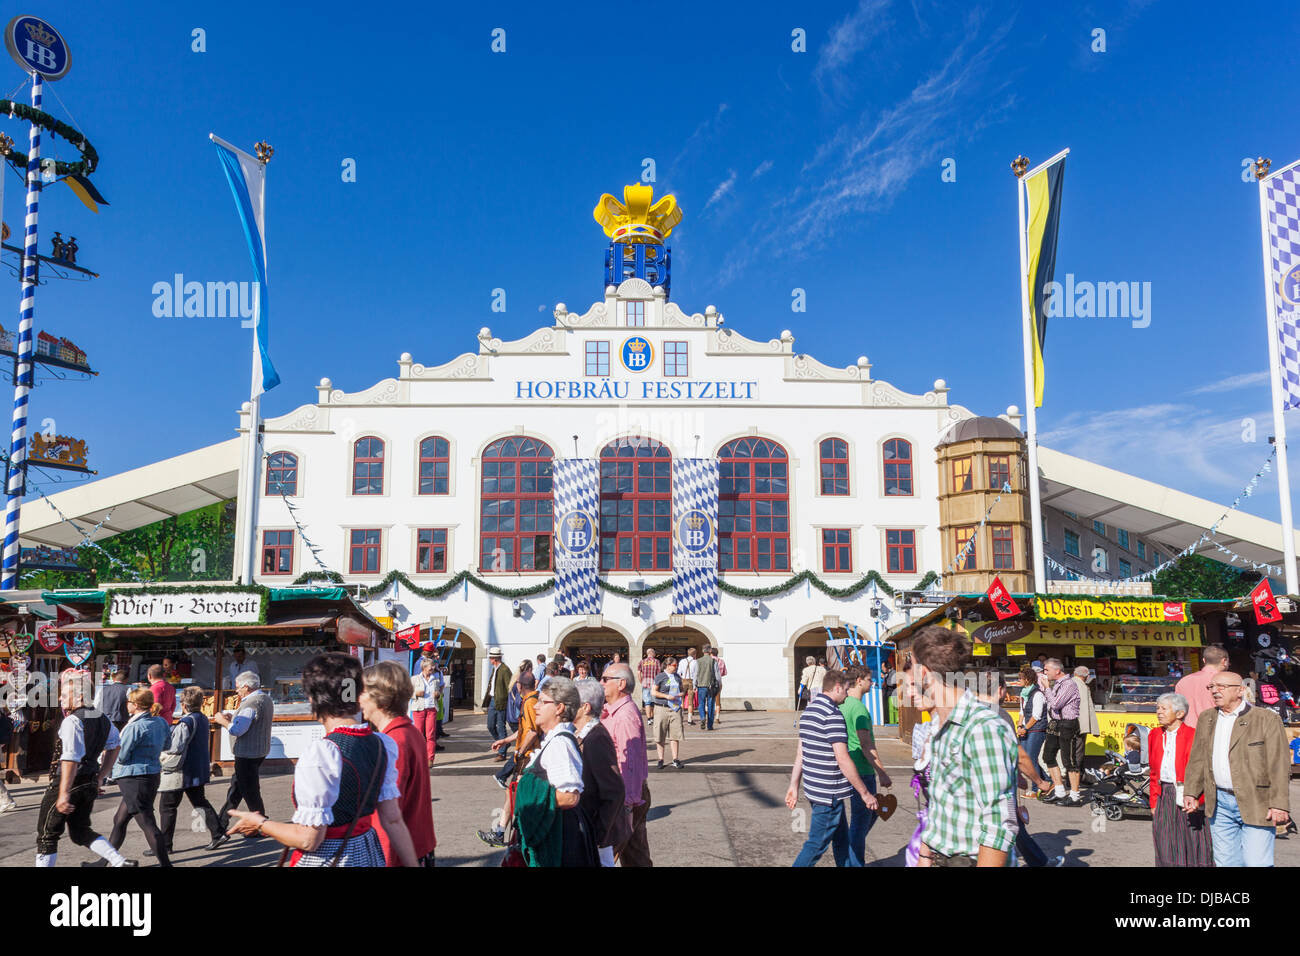 Germany Bavaria Munich Oktoberfest Hofbrauhaus Beer Tent & Germany Bavaria Munich Oktoberfest Hofbrauhaus Beer Tent Stock ...